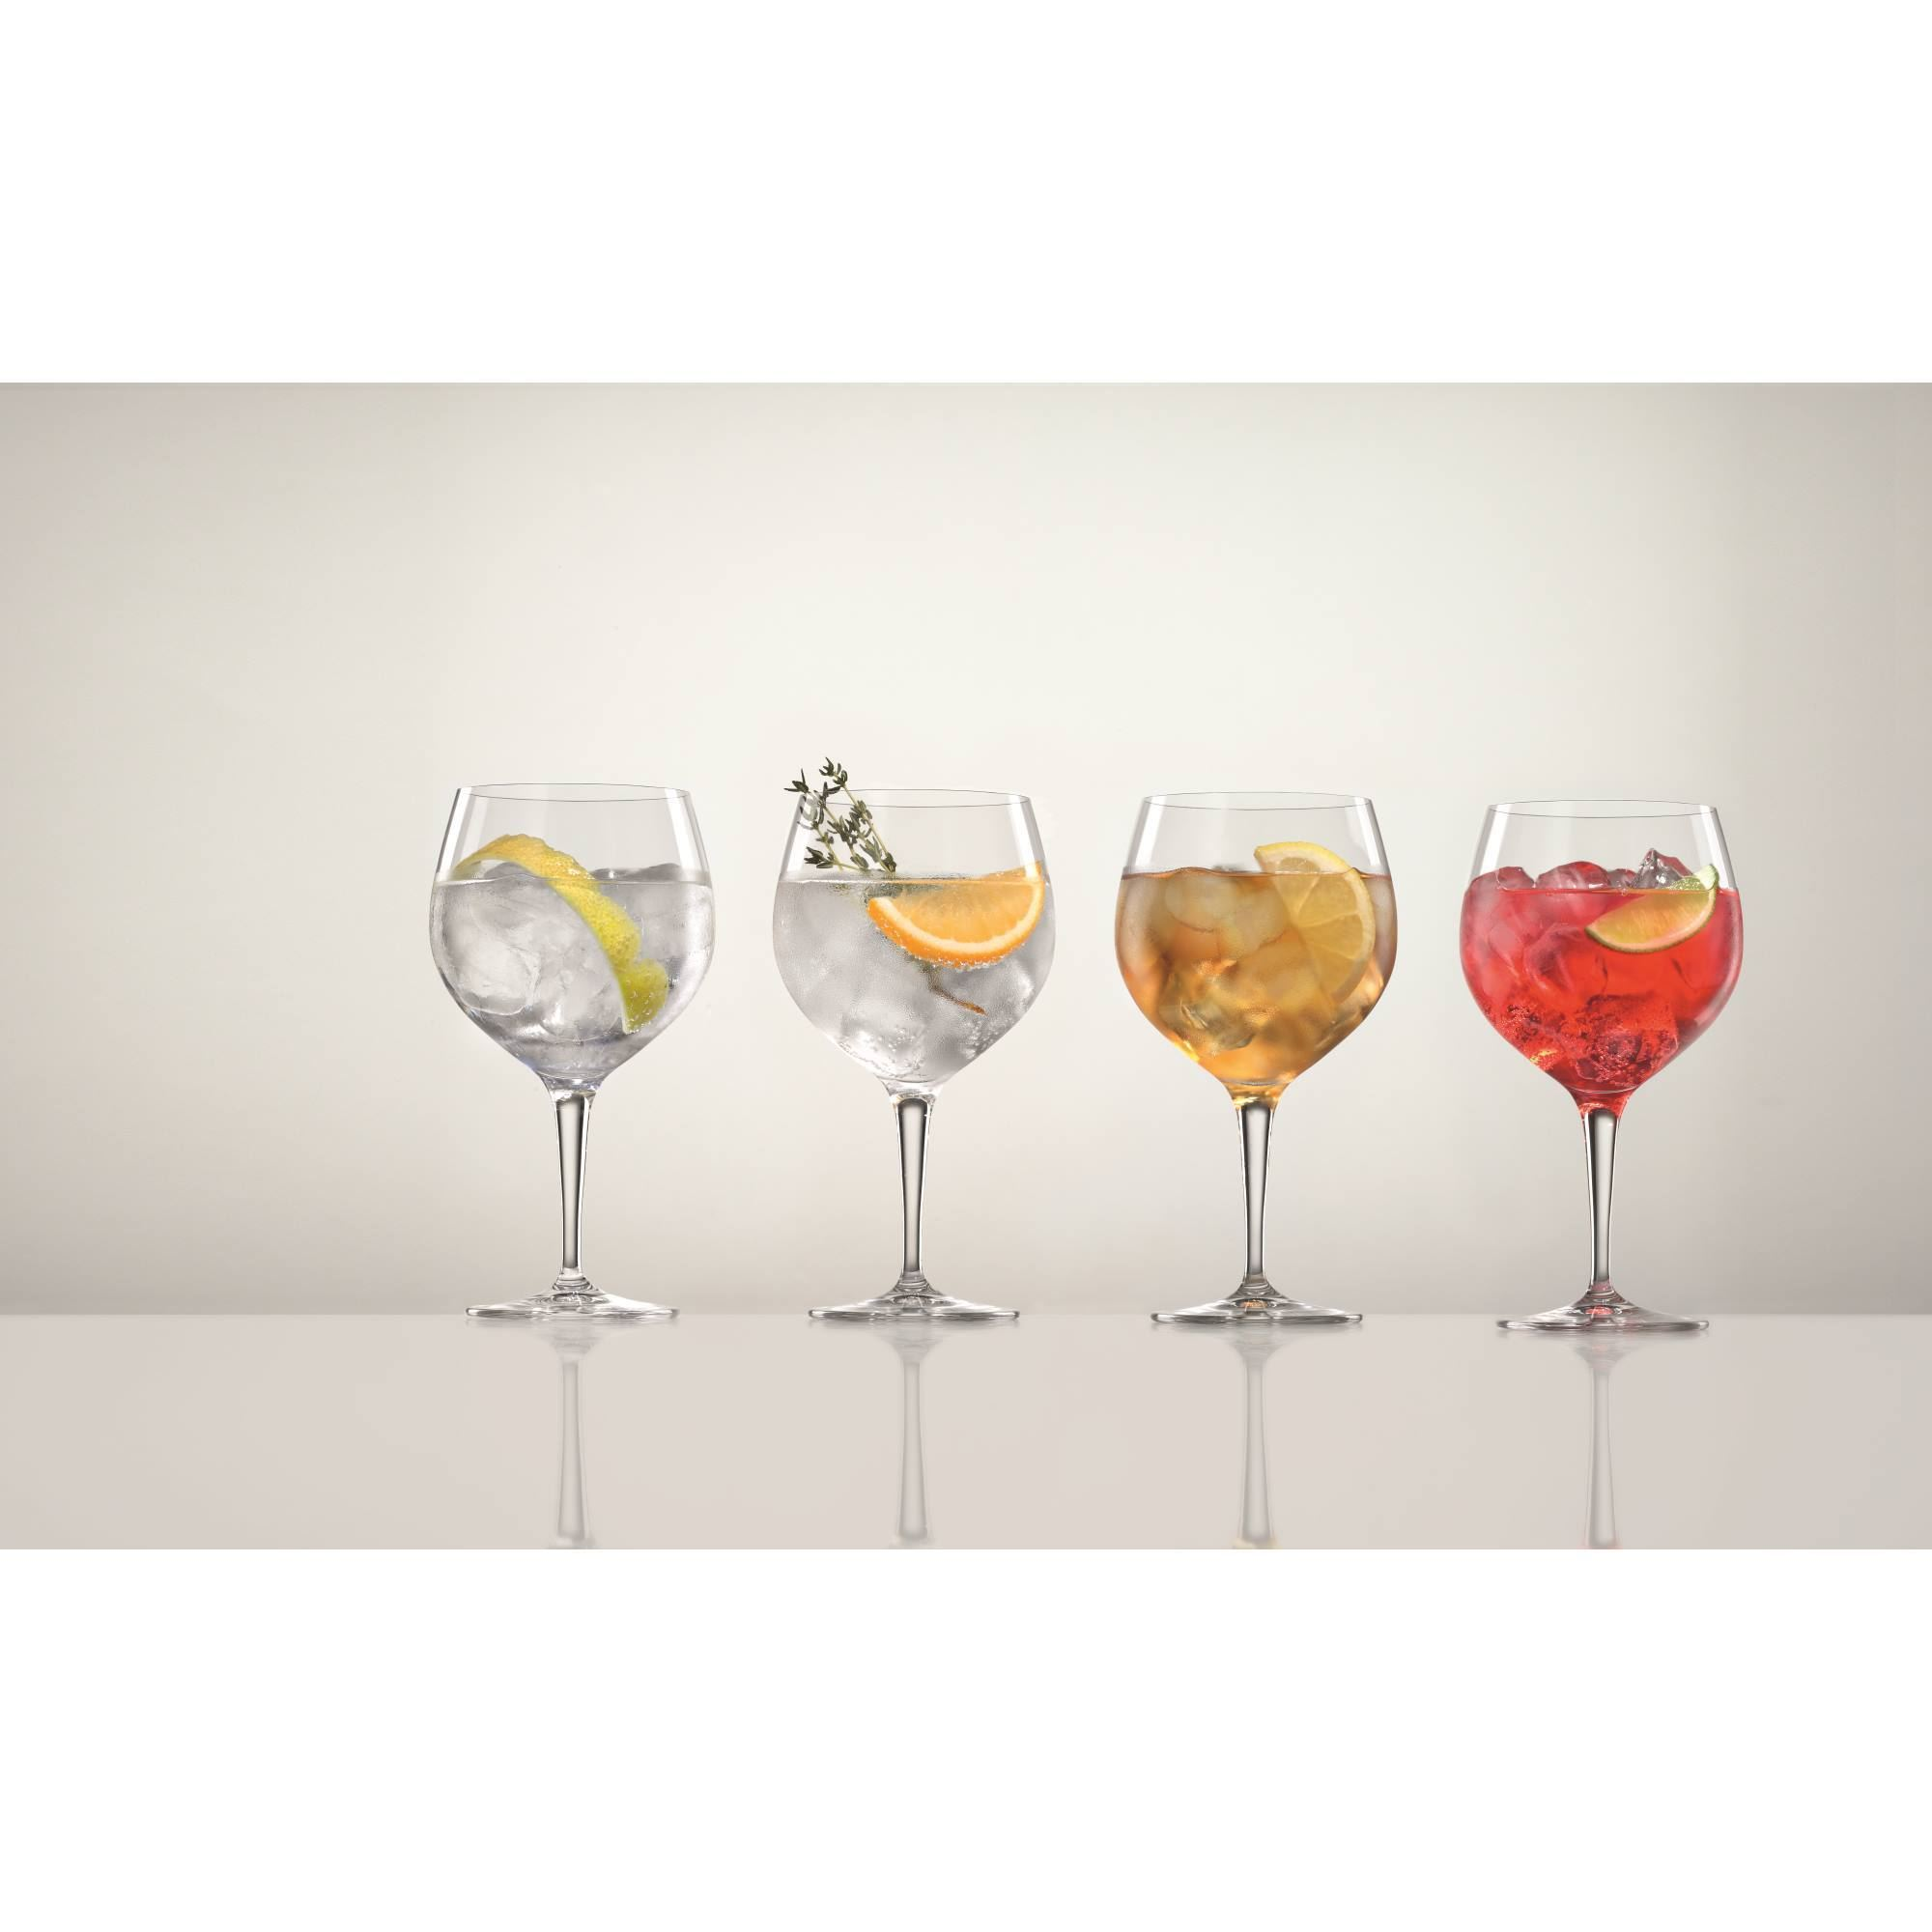 spiegelau gin tonic 4 gl ser im set inhalt 630 ml ebay. Black Bedroom Furniture Sets. Home Design Ideas